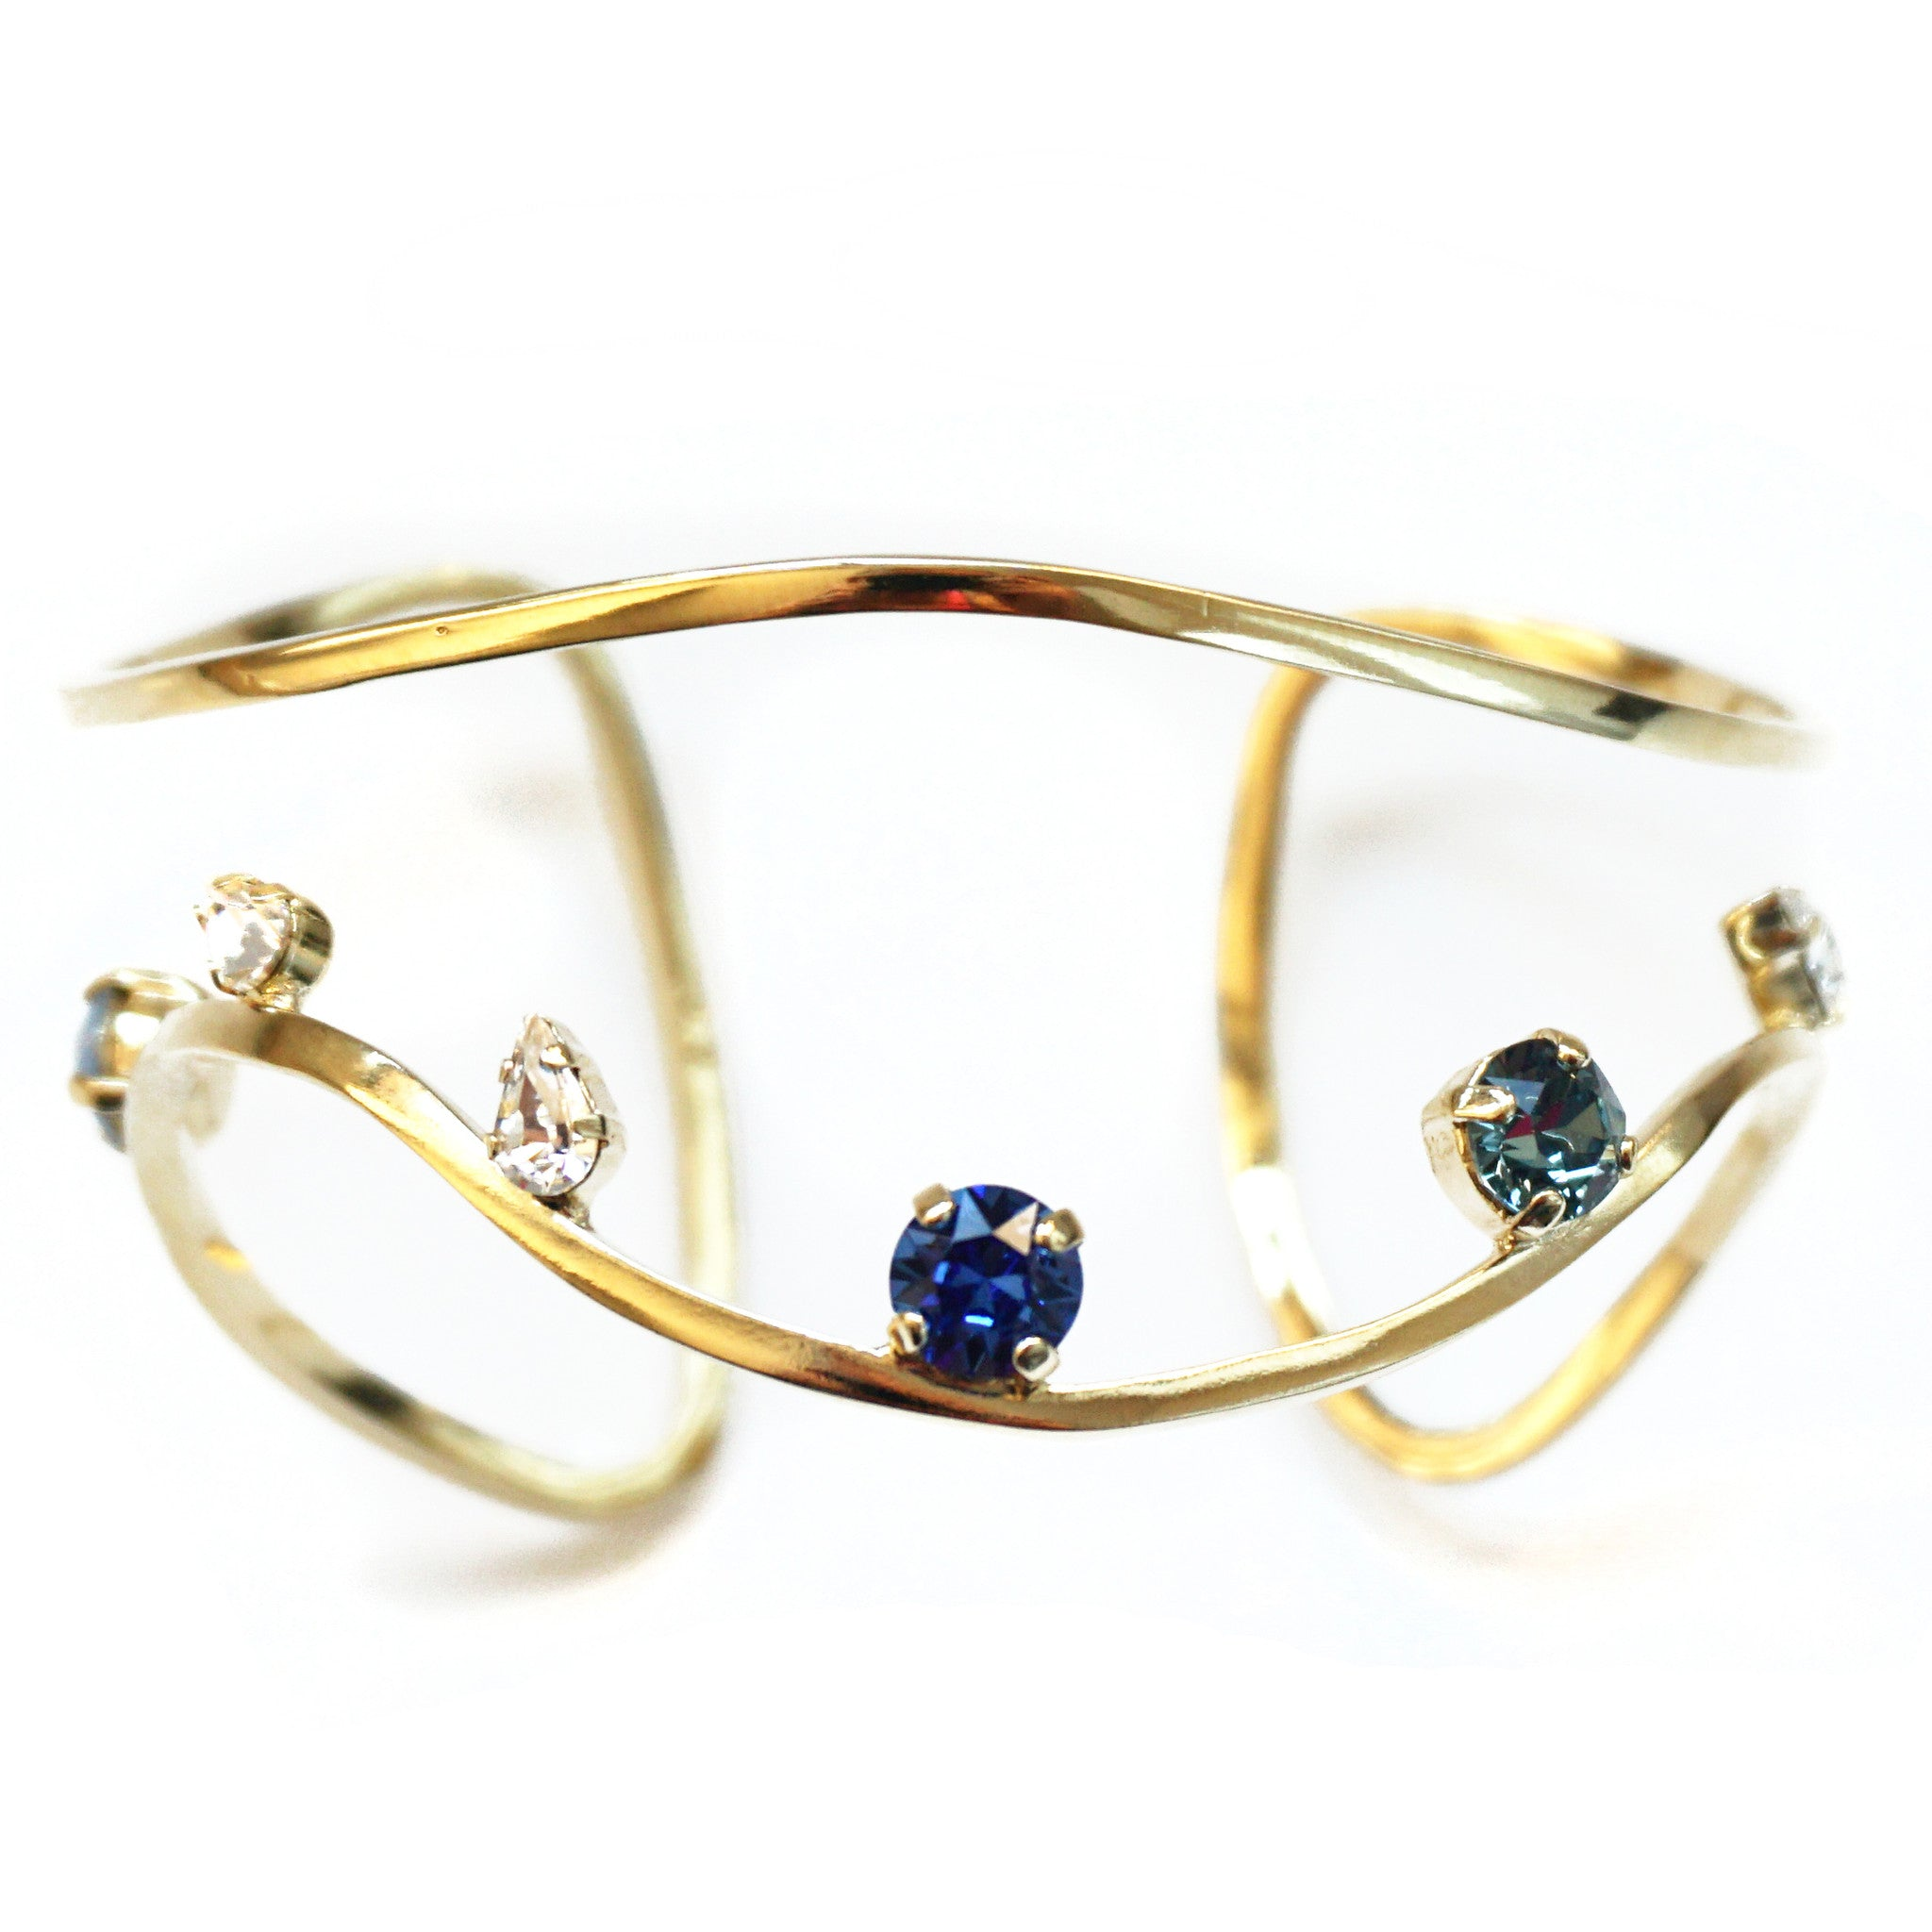 CAROLYN COLBY - GOLD GEM BRACELET